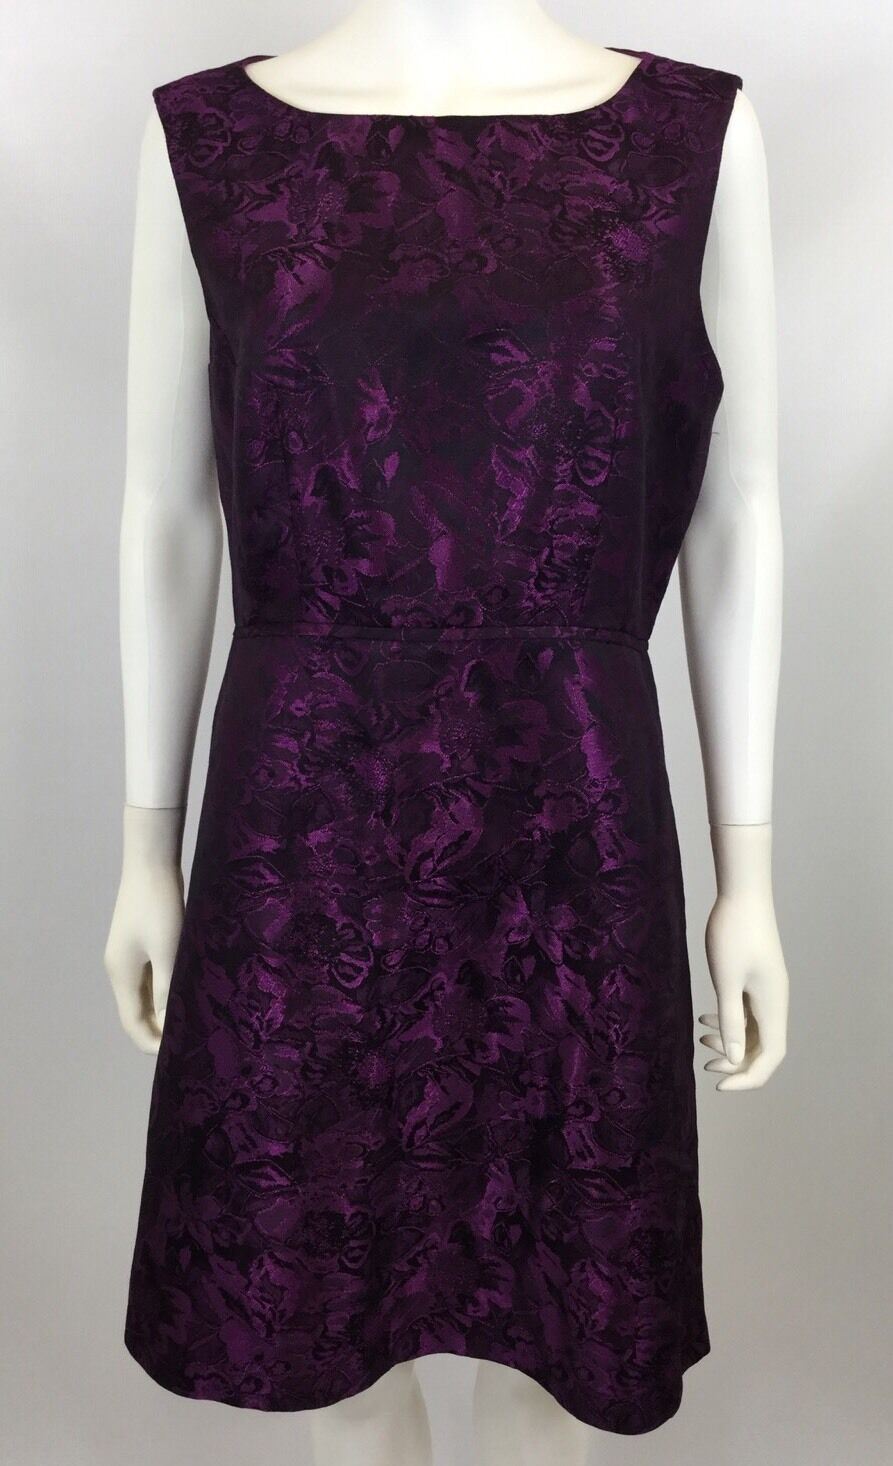 Tahari Women's Shimmer Sheath Dress - Size 10 - Retail  128.00 -